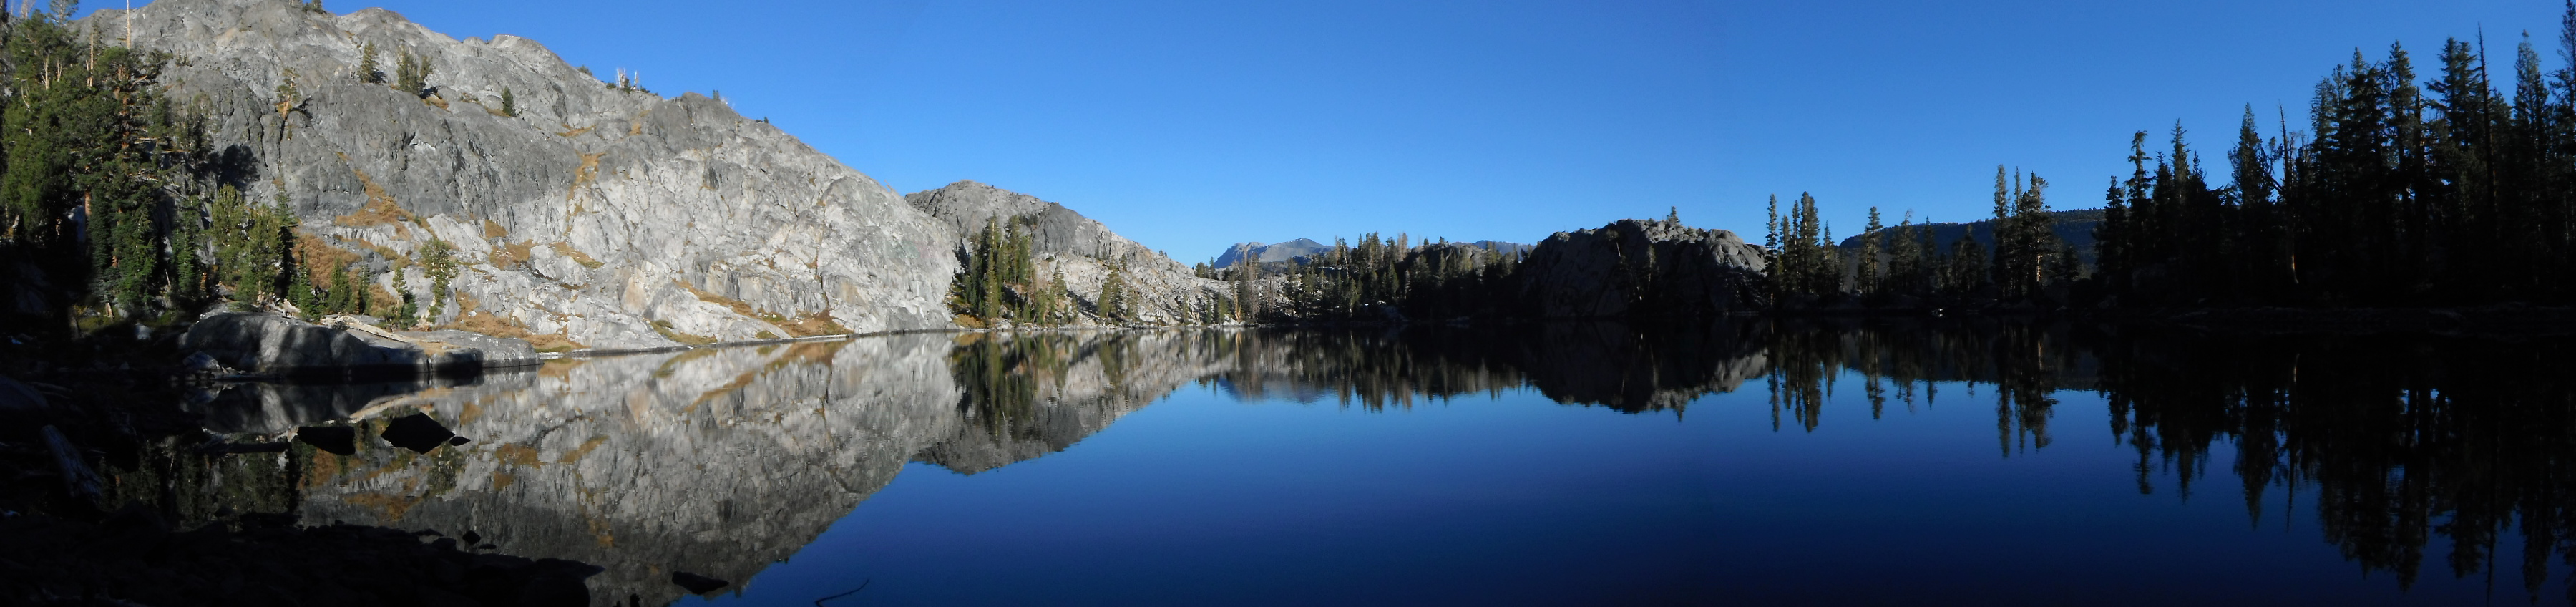 Altha Lake Panorama, near Mammoth Lakes, CA by Dave Norton